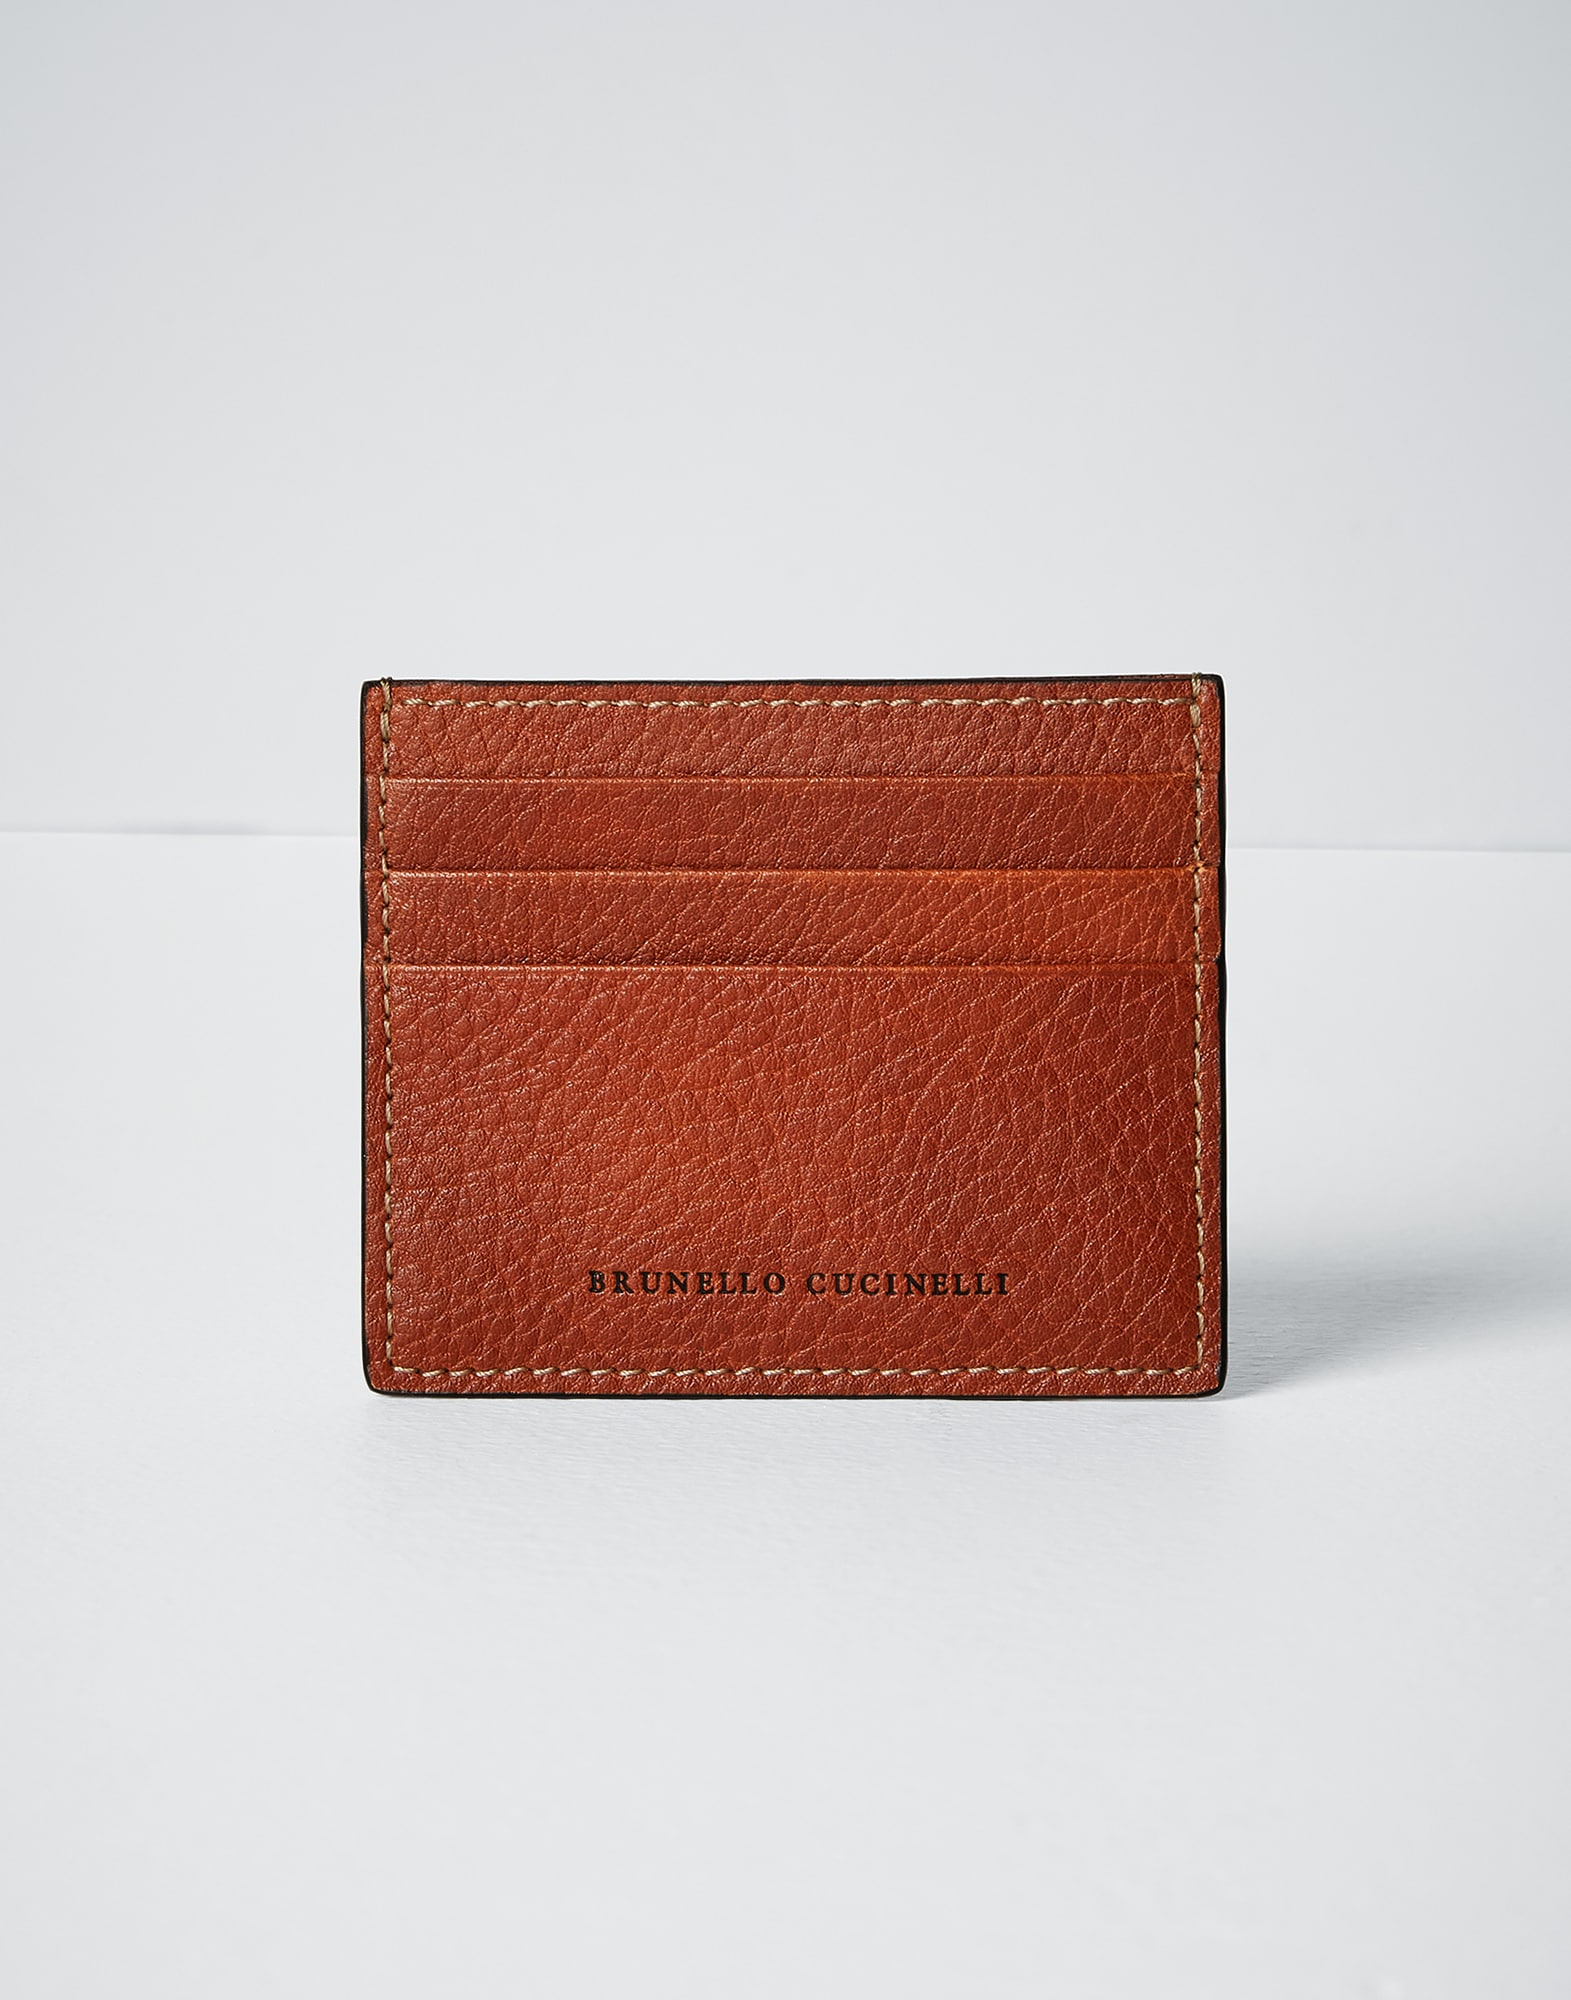 Card Holder Rum Man 1 - Brunello Cucinelli